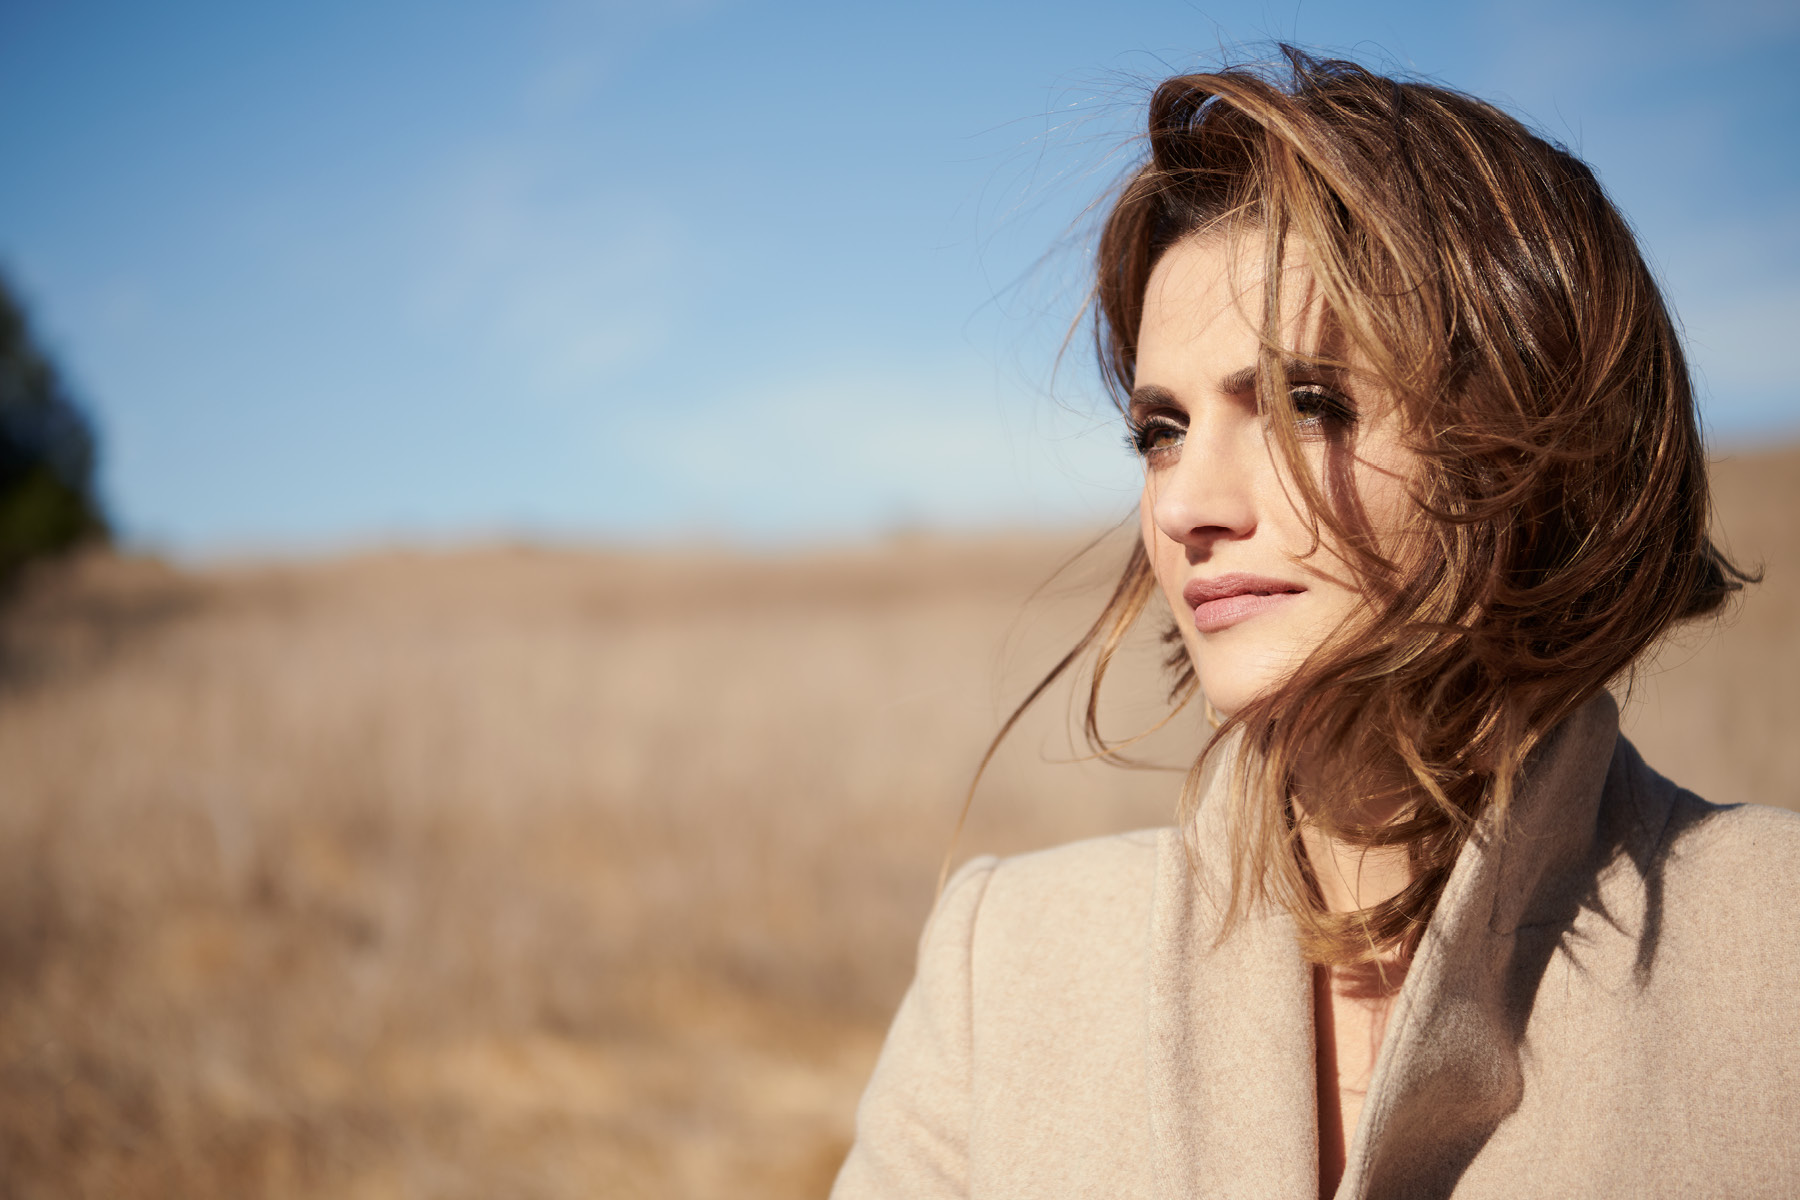 Spirit-&-Flesh-Magazine_STANA-KATIC_by_BRIAN-BOWEN-SMITH_9